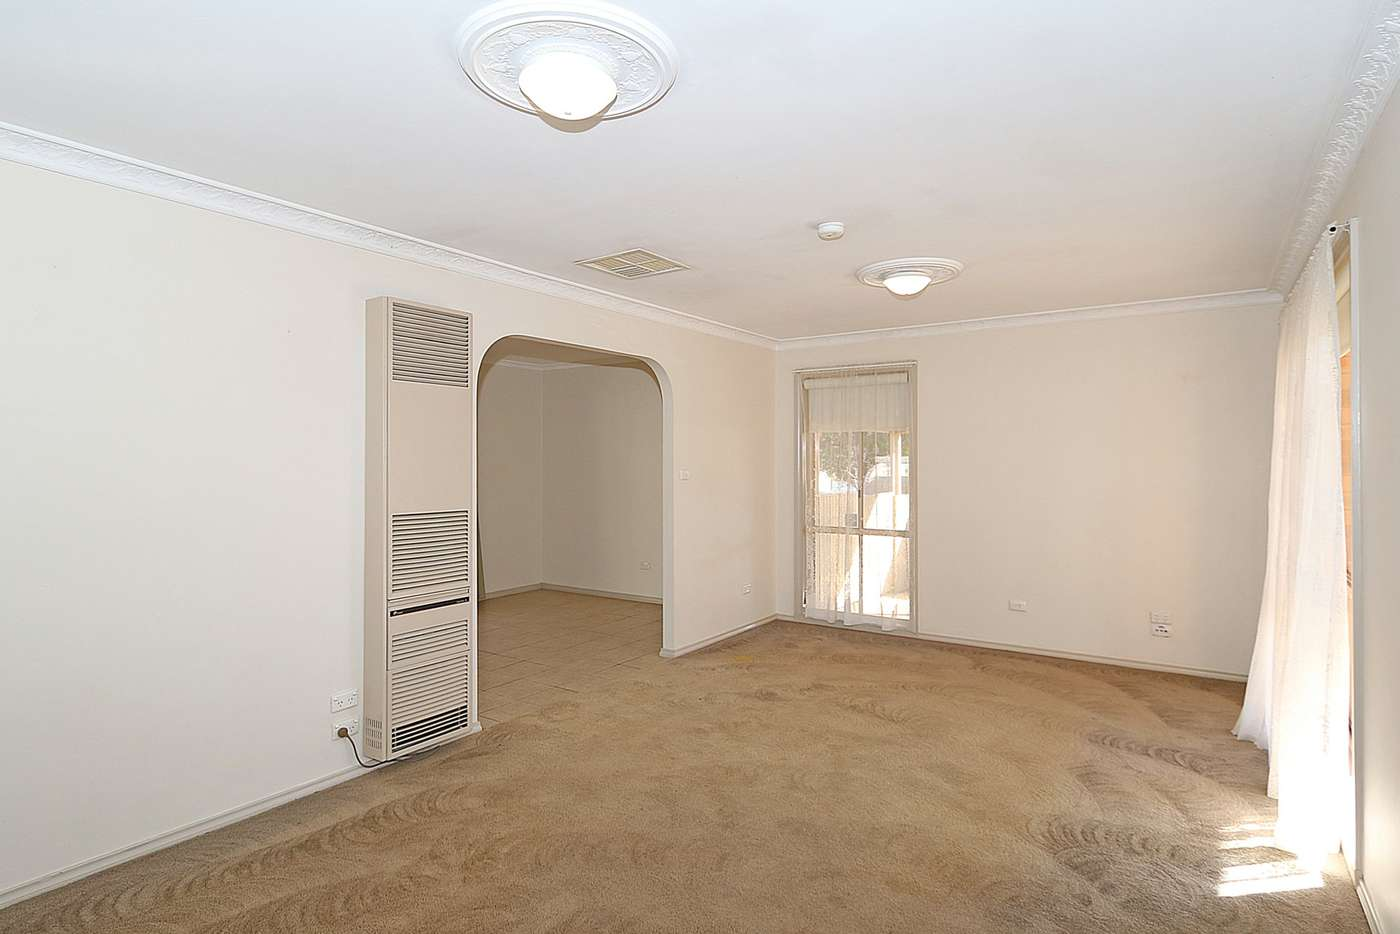 Fifth view of Homely house listing, 16 Clowes Place, Ashmont NSW 2650